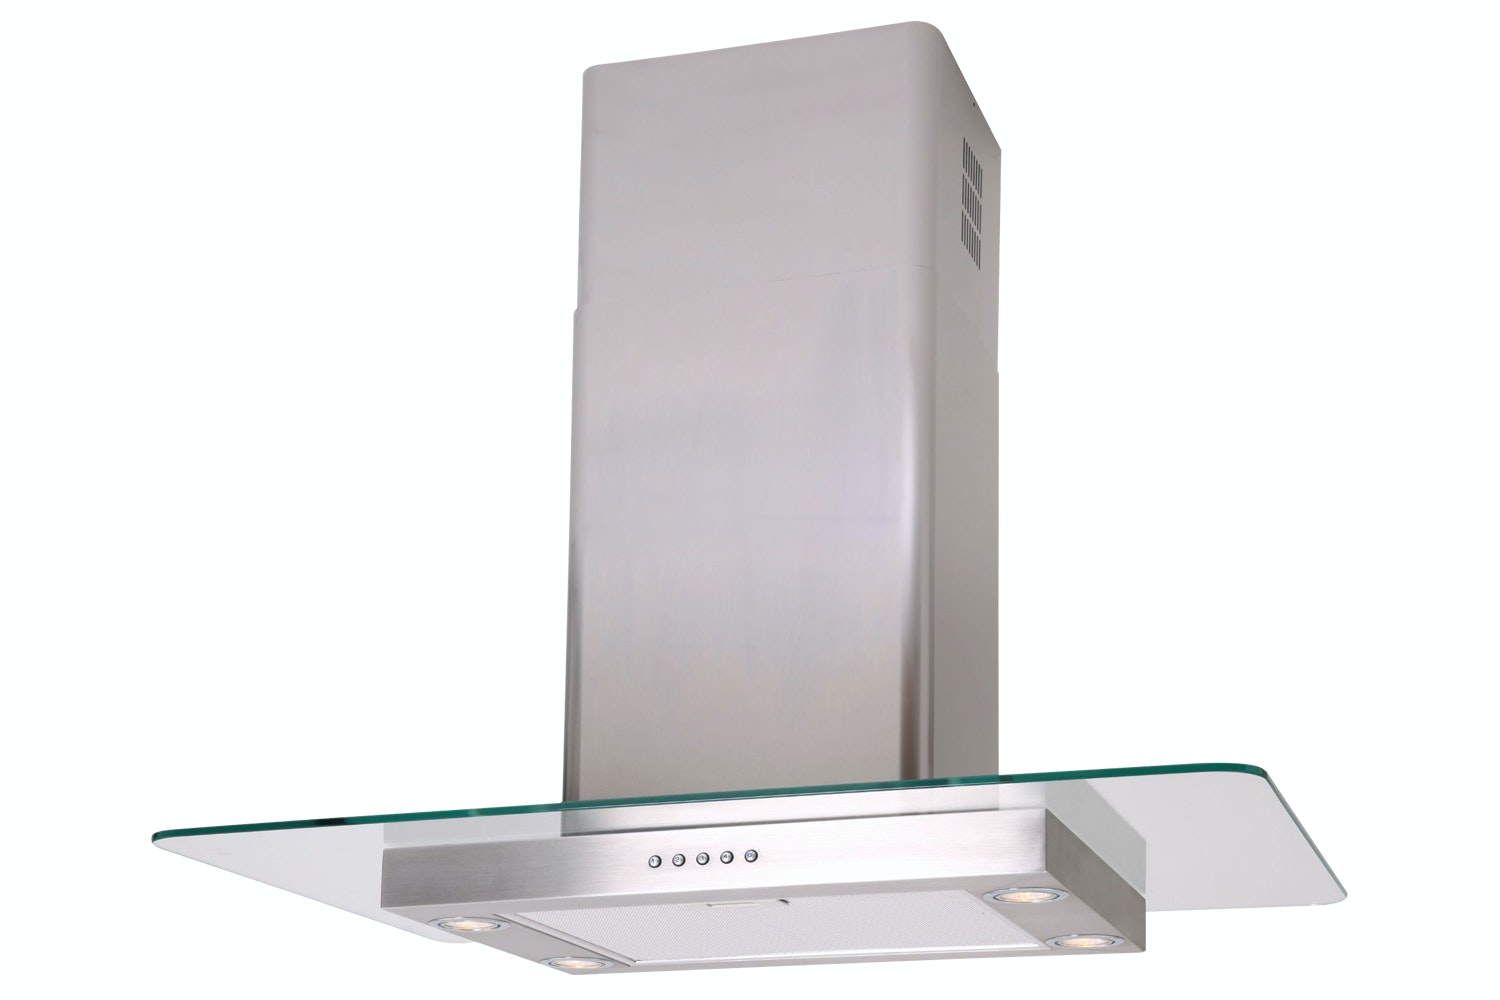 Luxair 70cm Straight Glass Island Cooker Hood | Stainless Steel